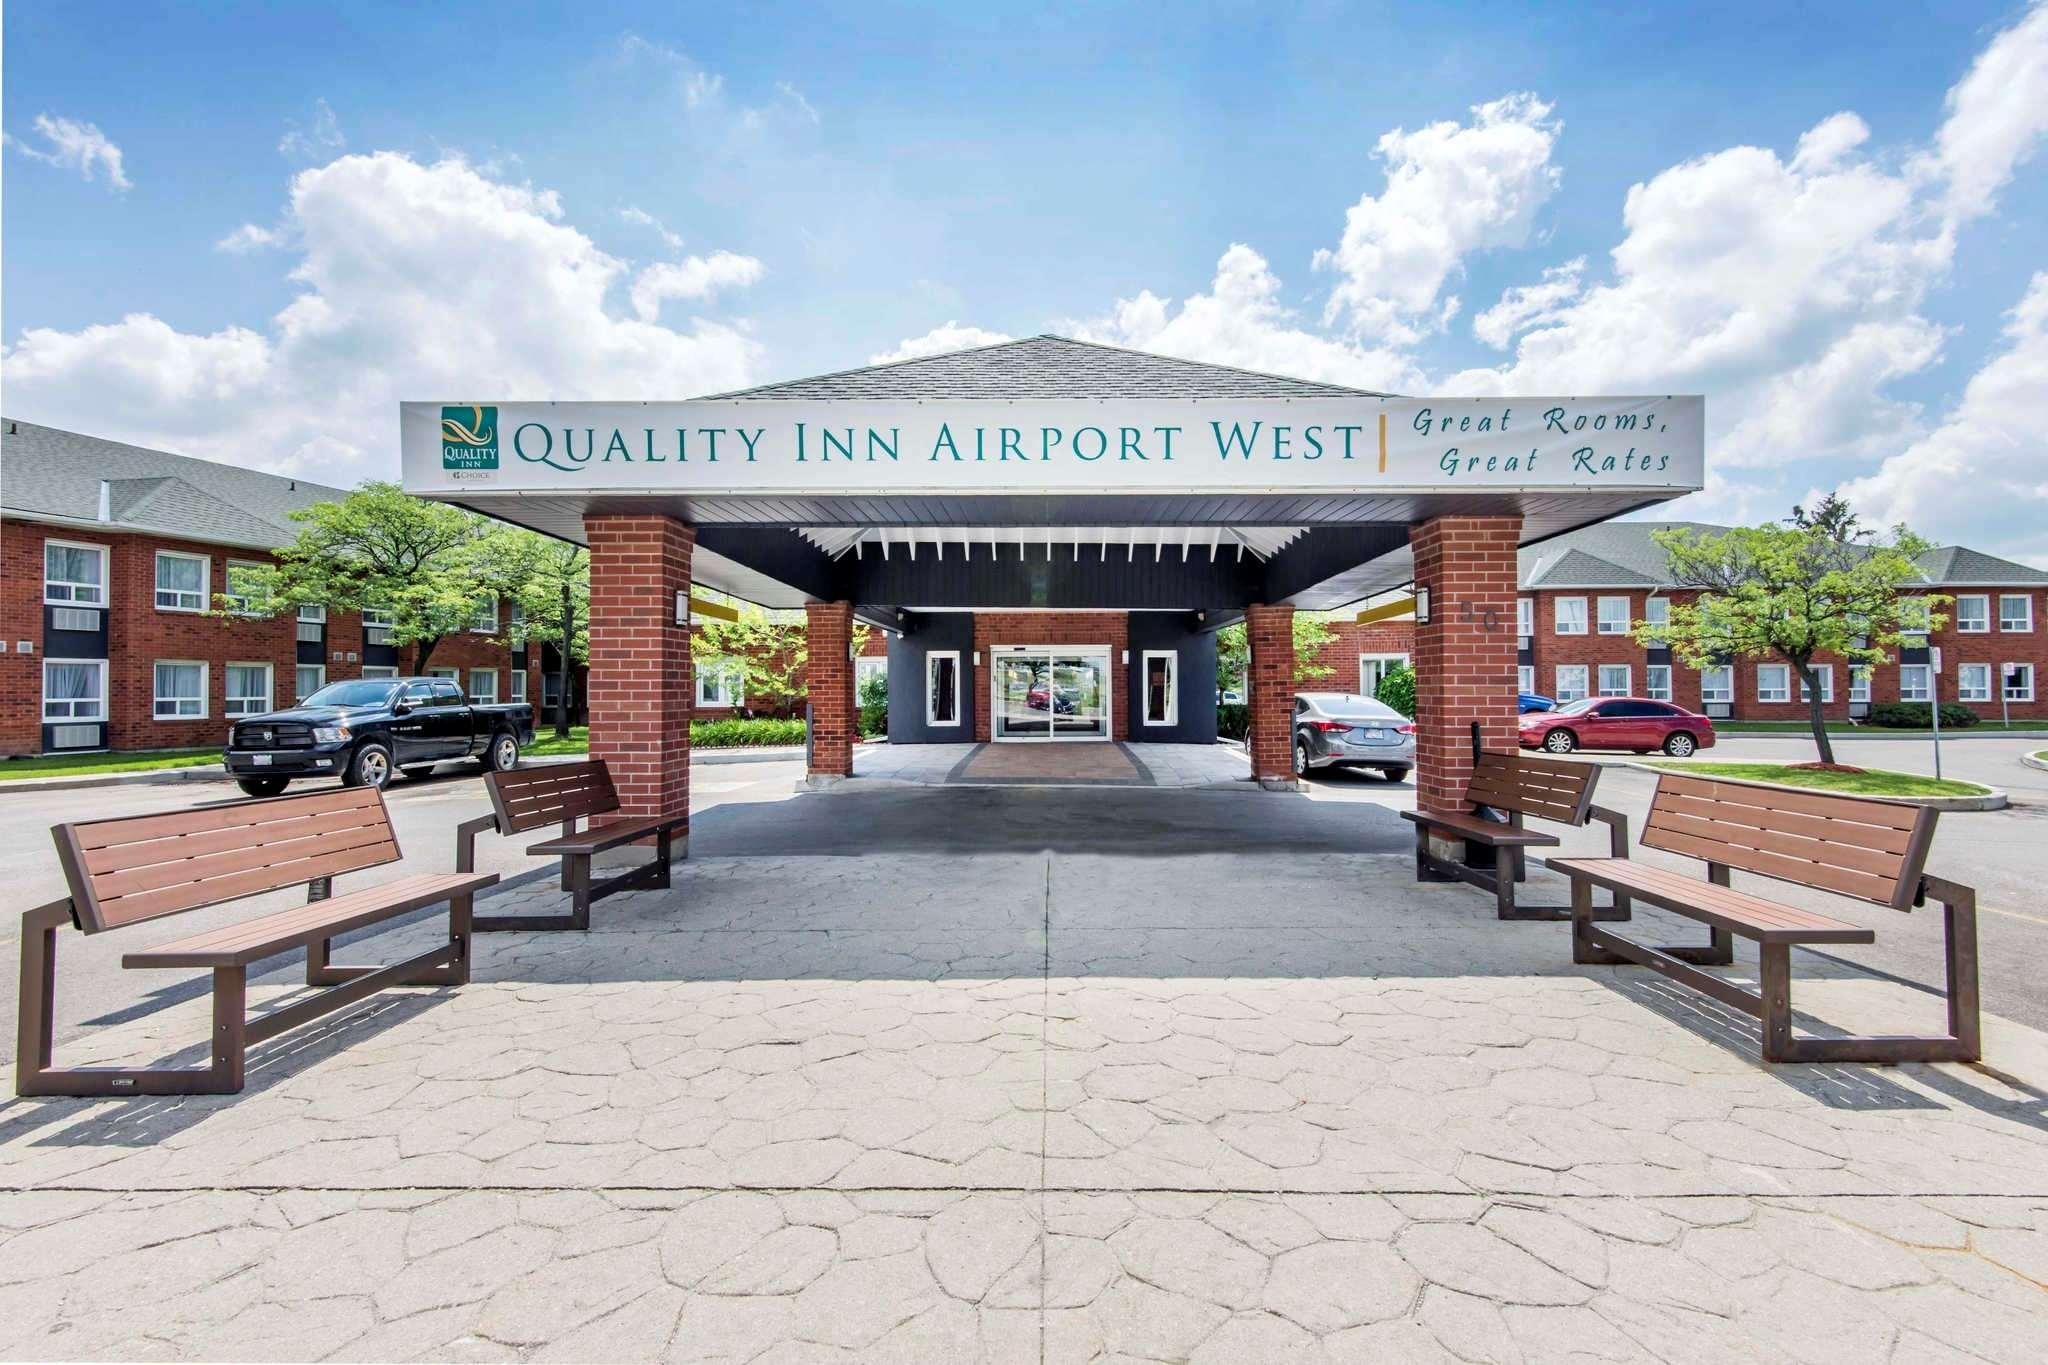 Quality Inn Airport West